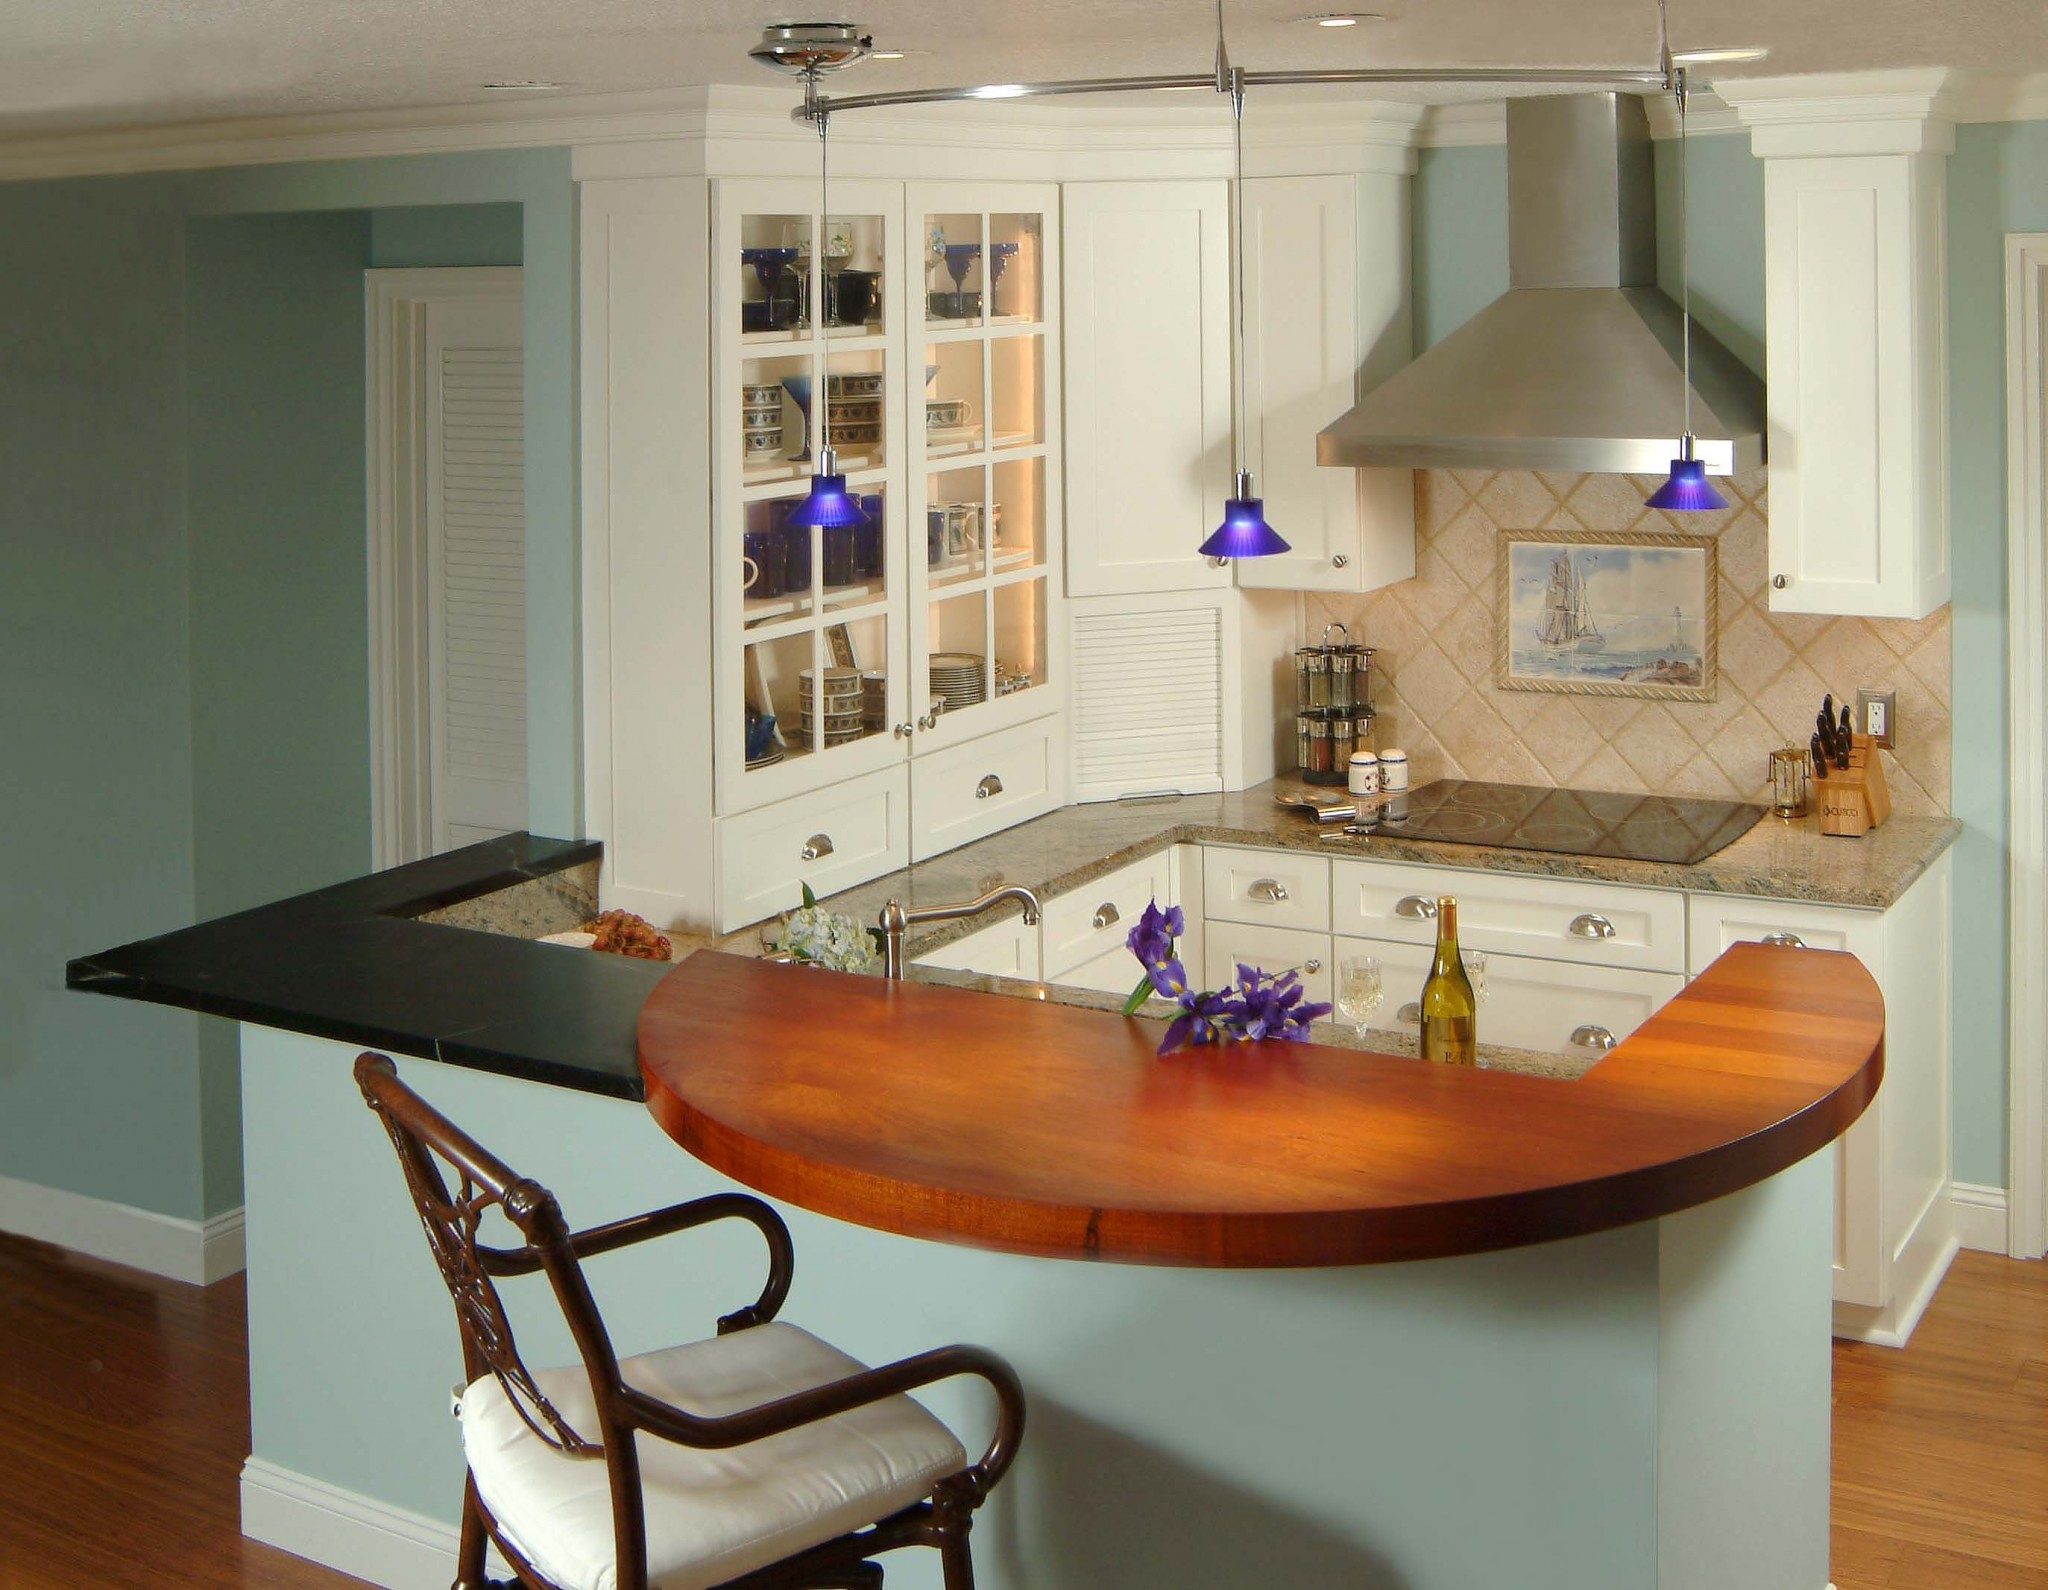 small contemporary kitchen with white cabinetry, peninsula seating at layered wood and stone countertops